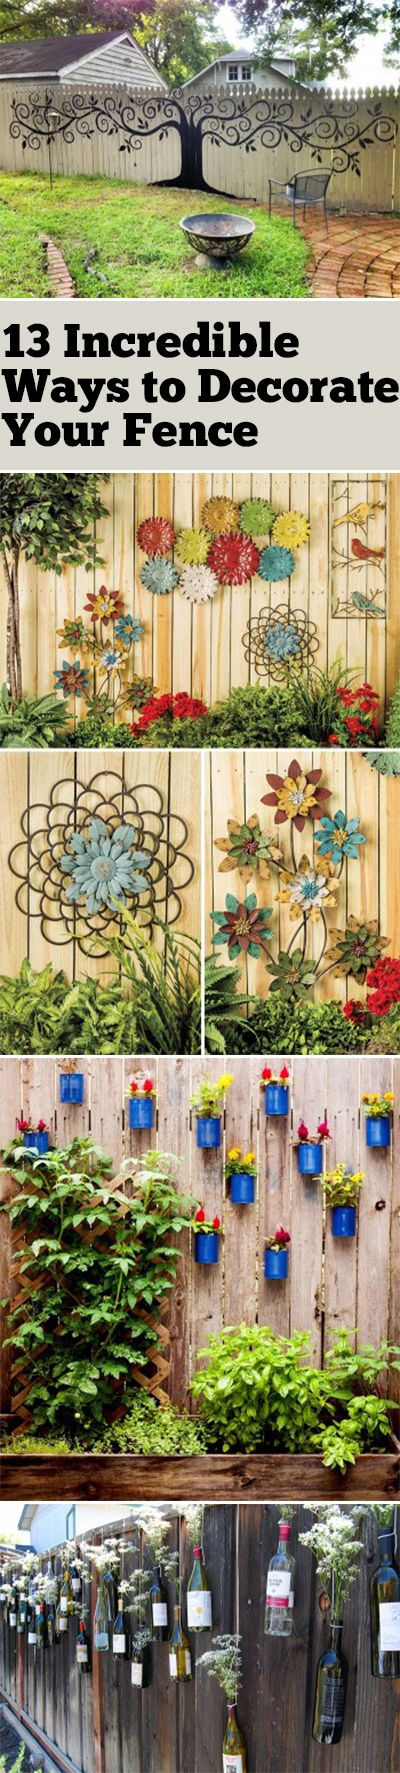 Outdoor living, fence ideas, fence decorations, outdoor decor, DIY decor,  gardening, popular pin, outdoor DIY projects. - 13 Incredible Ways To Decorate Your Fence Gardening And Outdoors